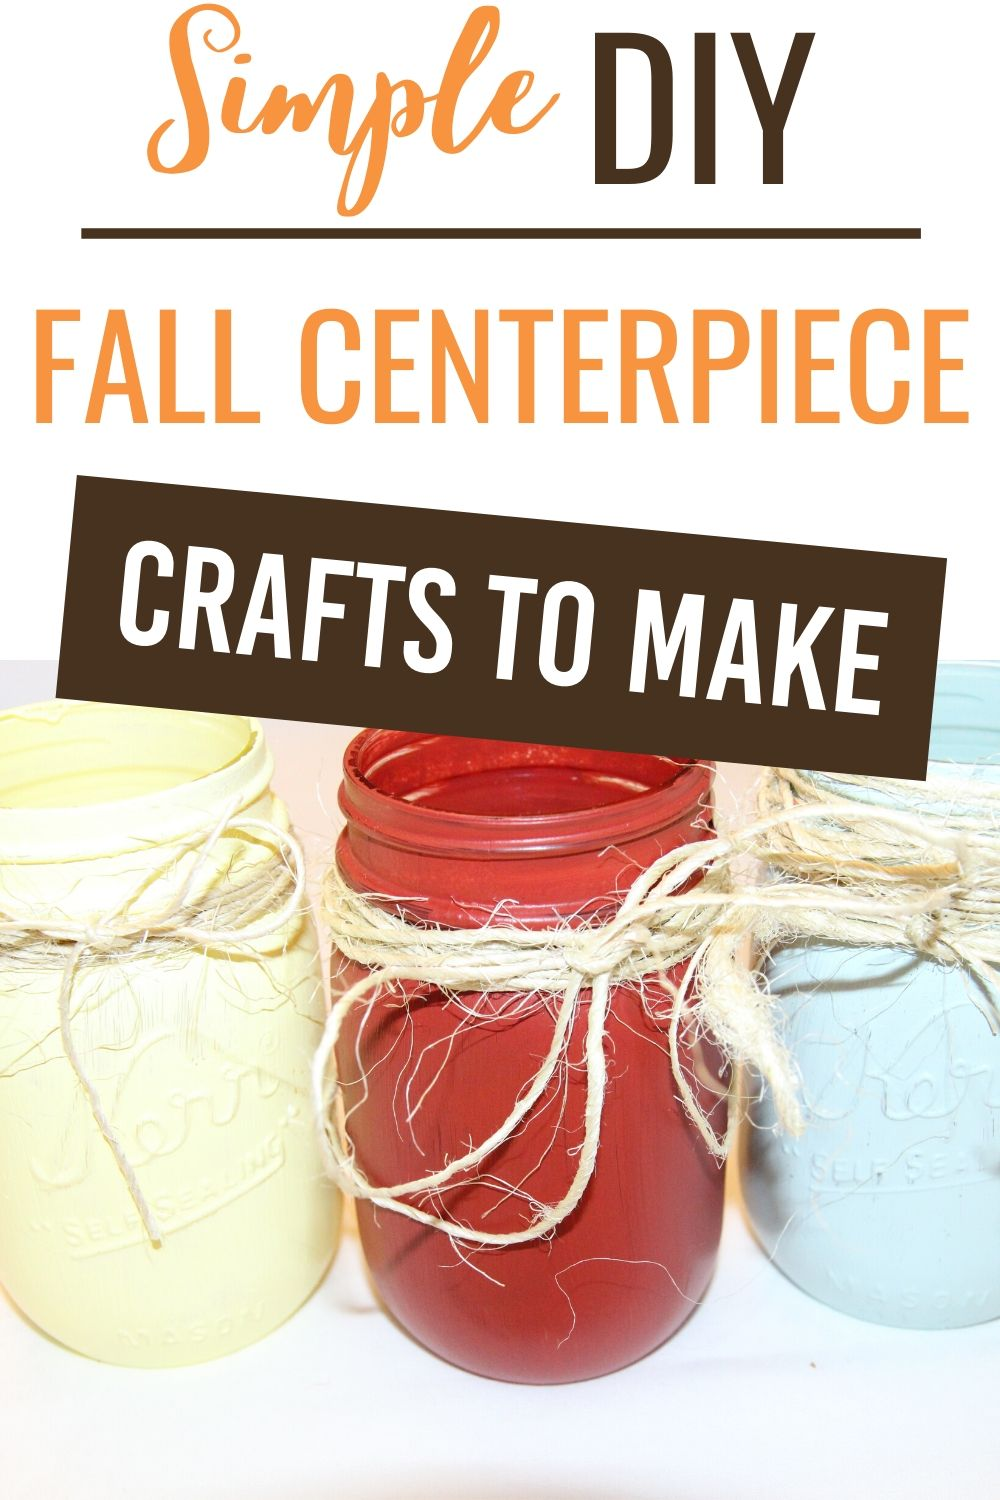 These fun, quirky, and simple DIY easy fall crafts are the best way to unleash your creative side and have fun while you are at it. #fall #craft #diy #tutorial #easy #affordable #decorations via @homebyjenn